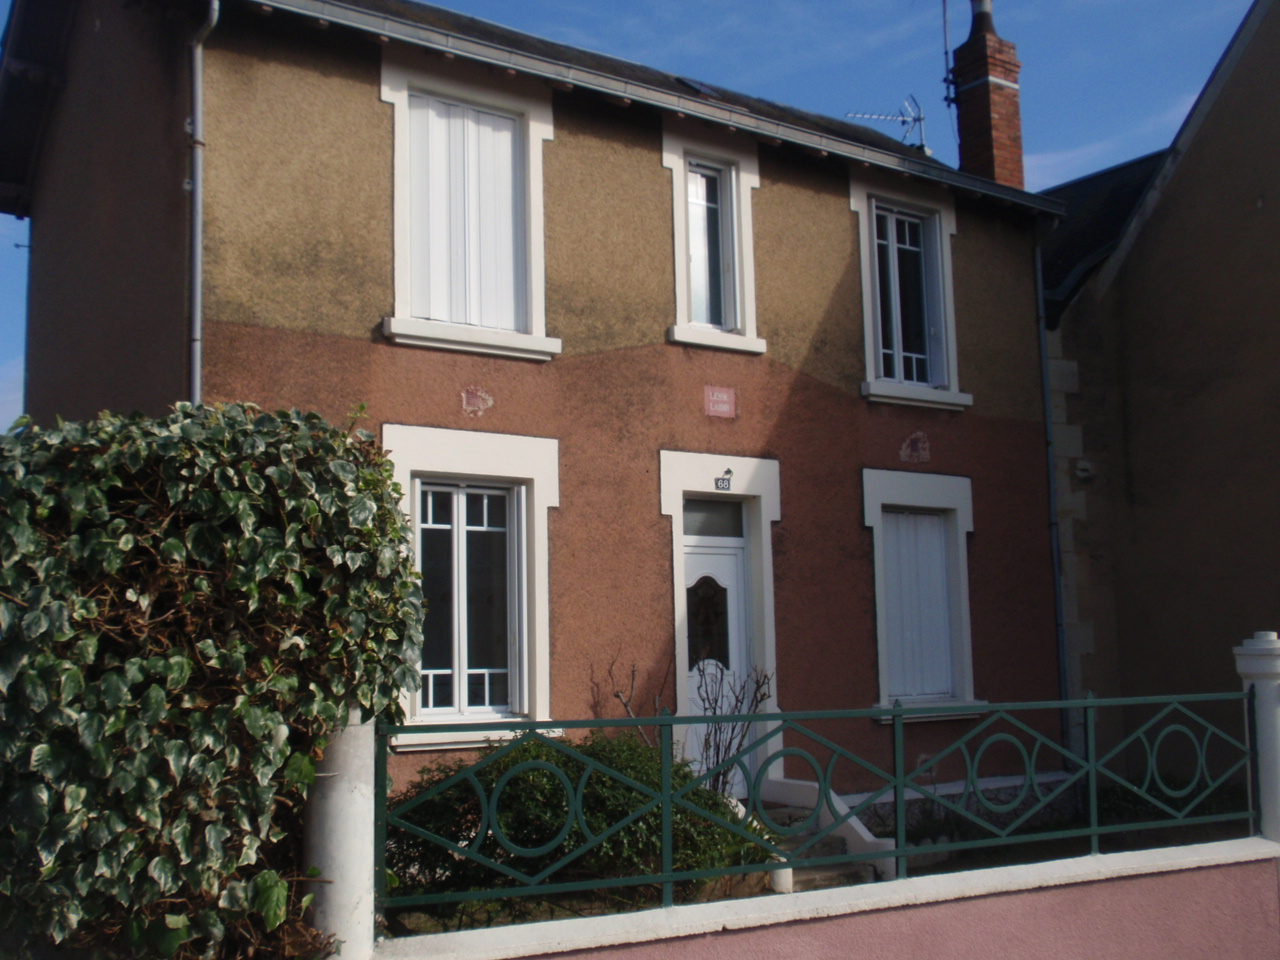 Agence blossac agences immobili res chatellerault et for Agence appartement et maison meudon